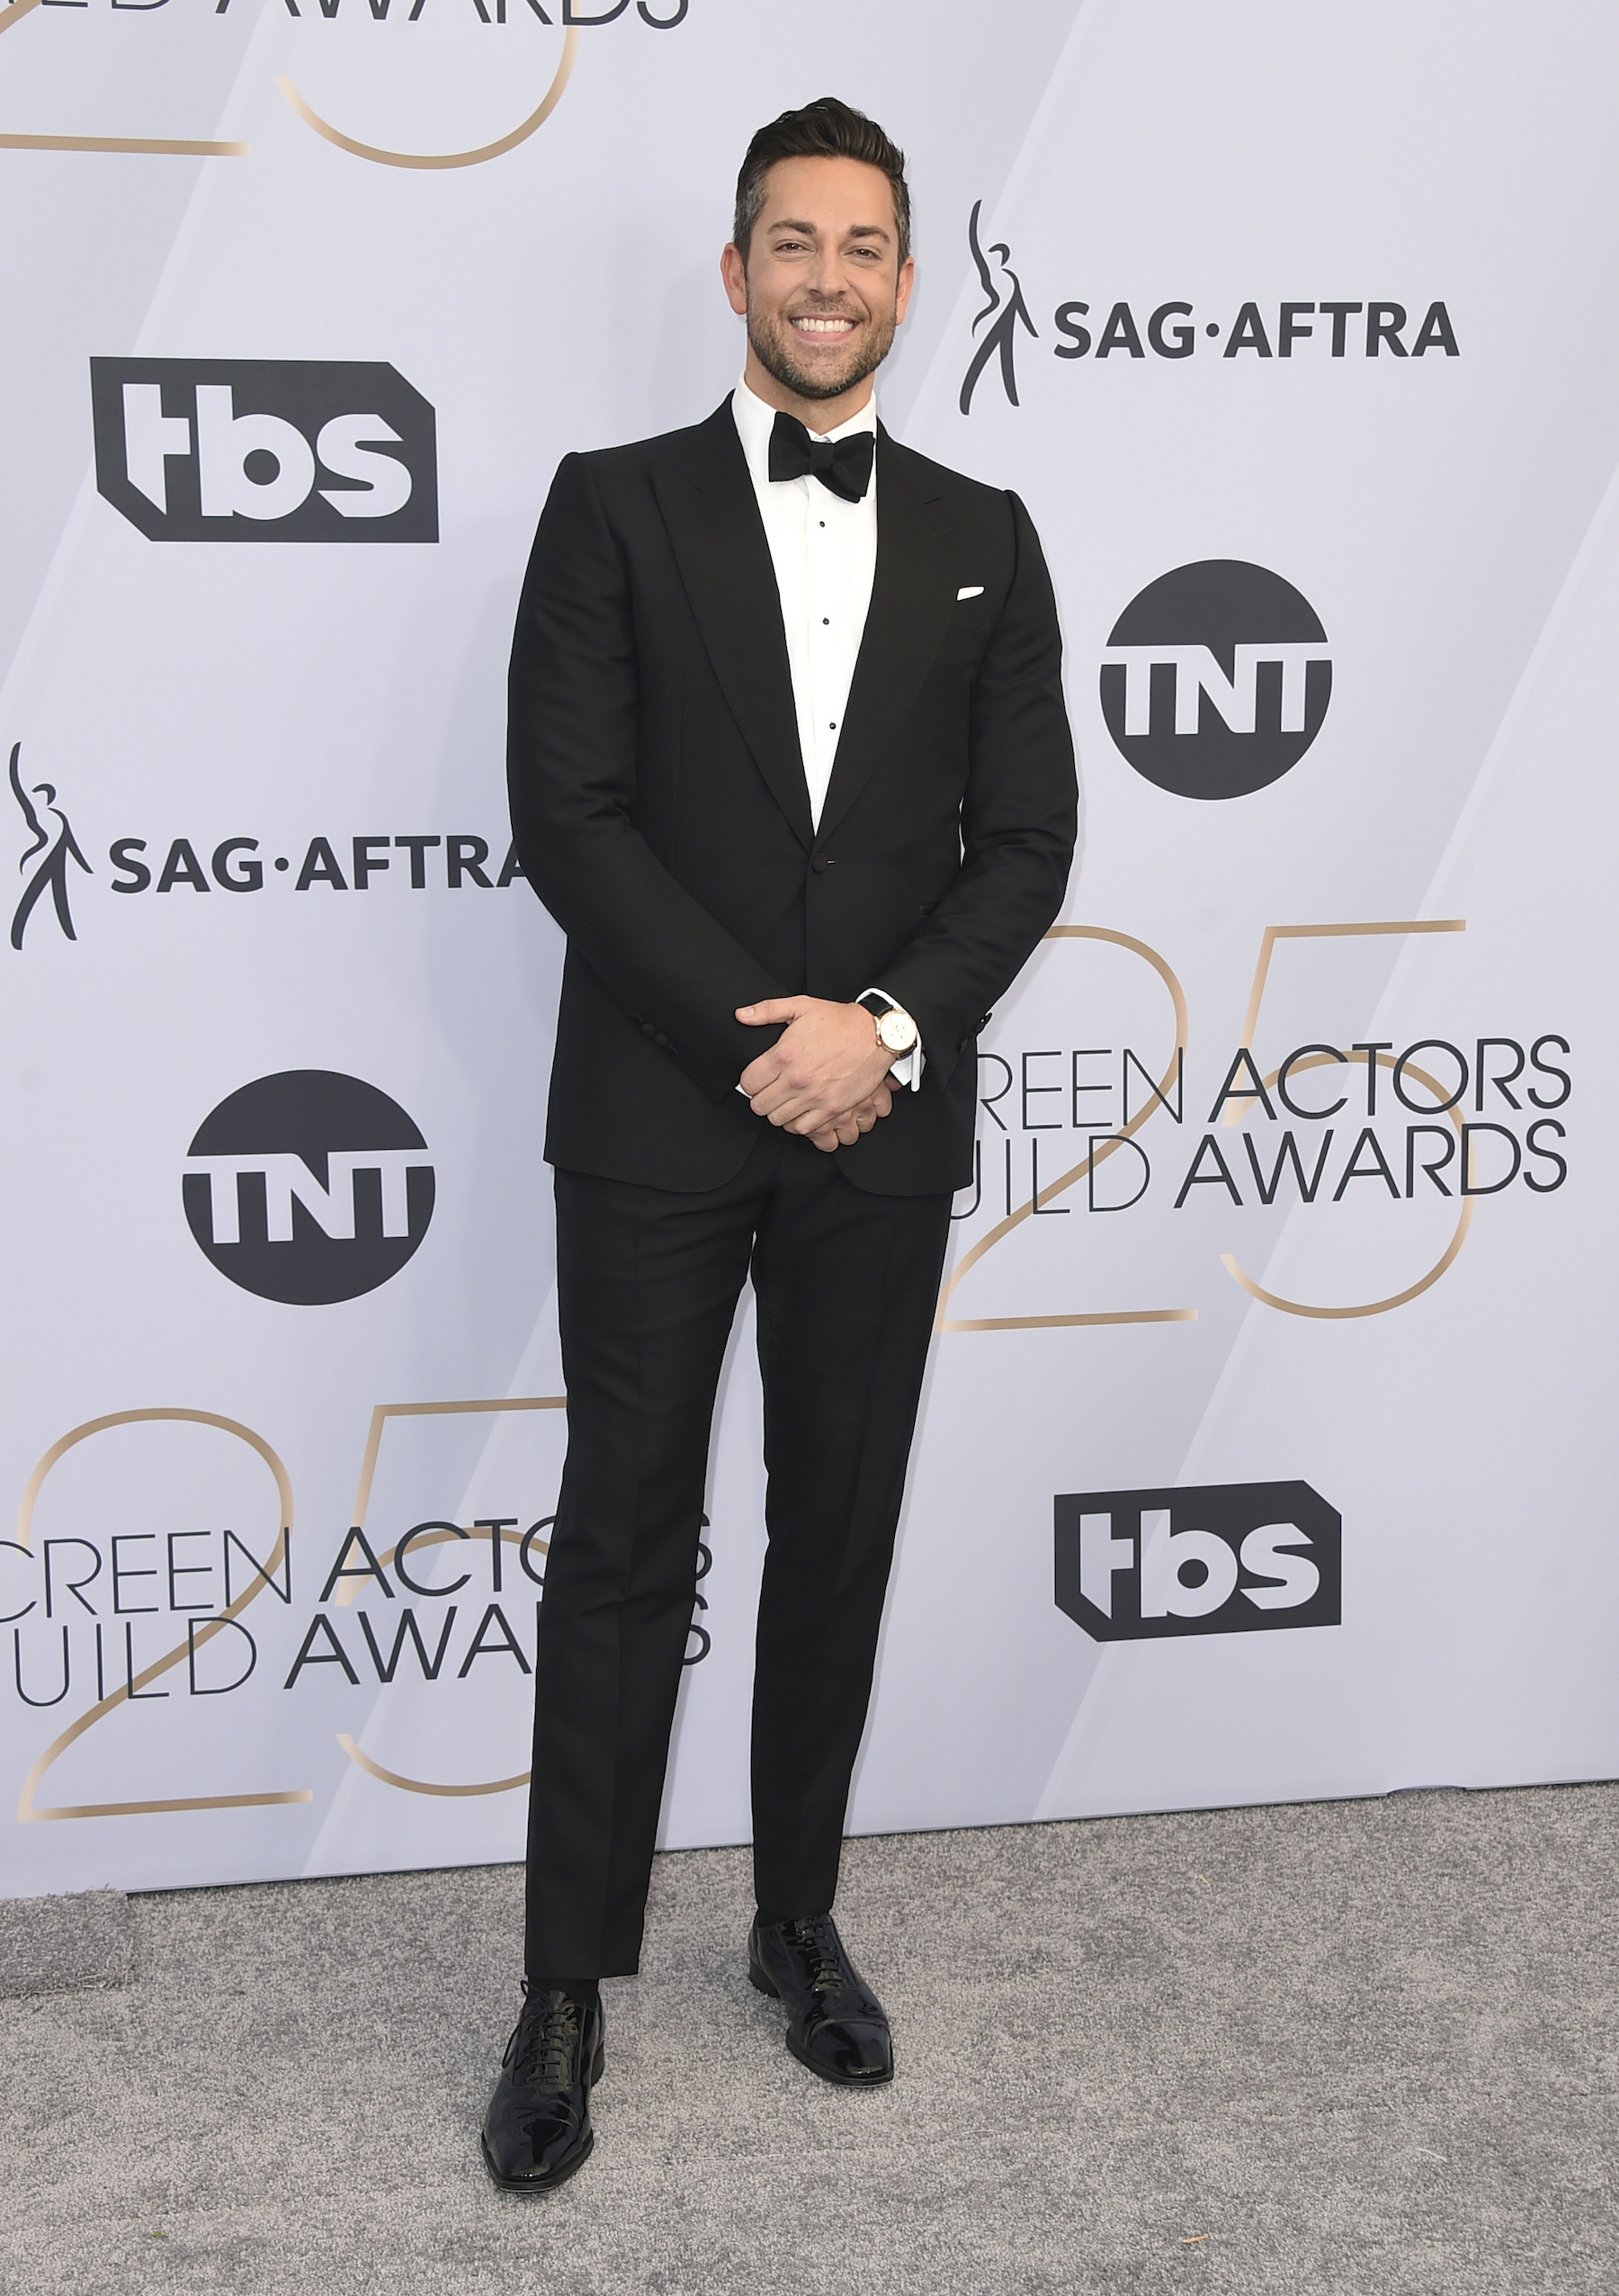 <div class='meta'><div class='origin-logo' data-origin='AP'></div><span class='caption-text' data-credit='Jordan Strauss/Invision/AP'>Zachary Levi arrives at the 25th annual Screen Actors Guild Awards at the Shrine Auditorium & Expo Hall on Sunday, Jan. 27, 2019, in Los Angeles.</span></div>